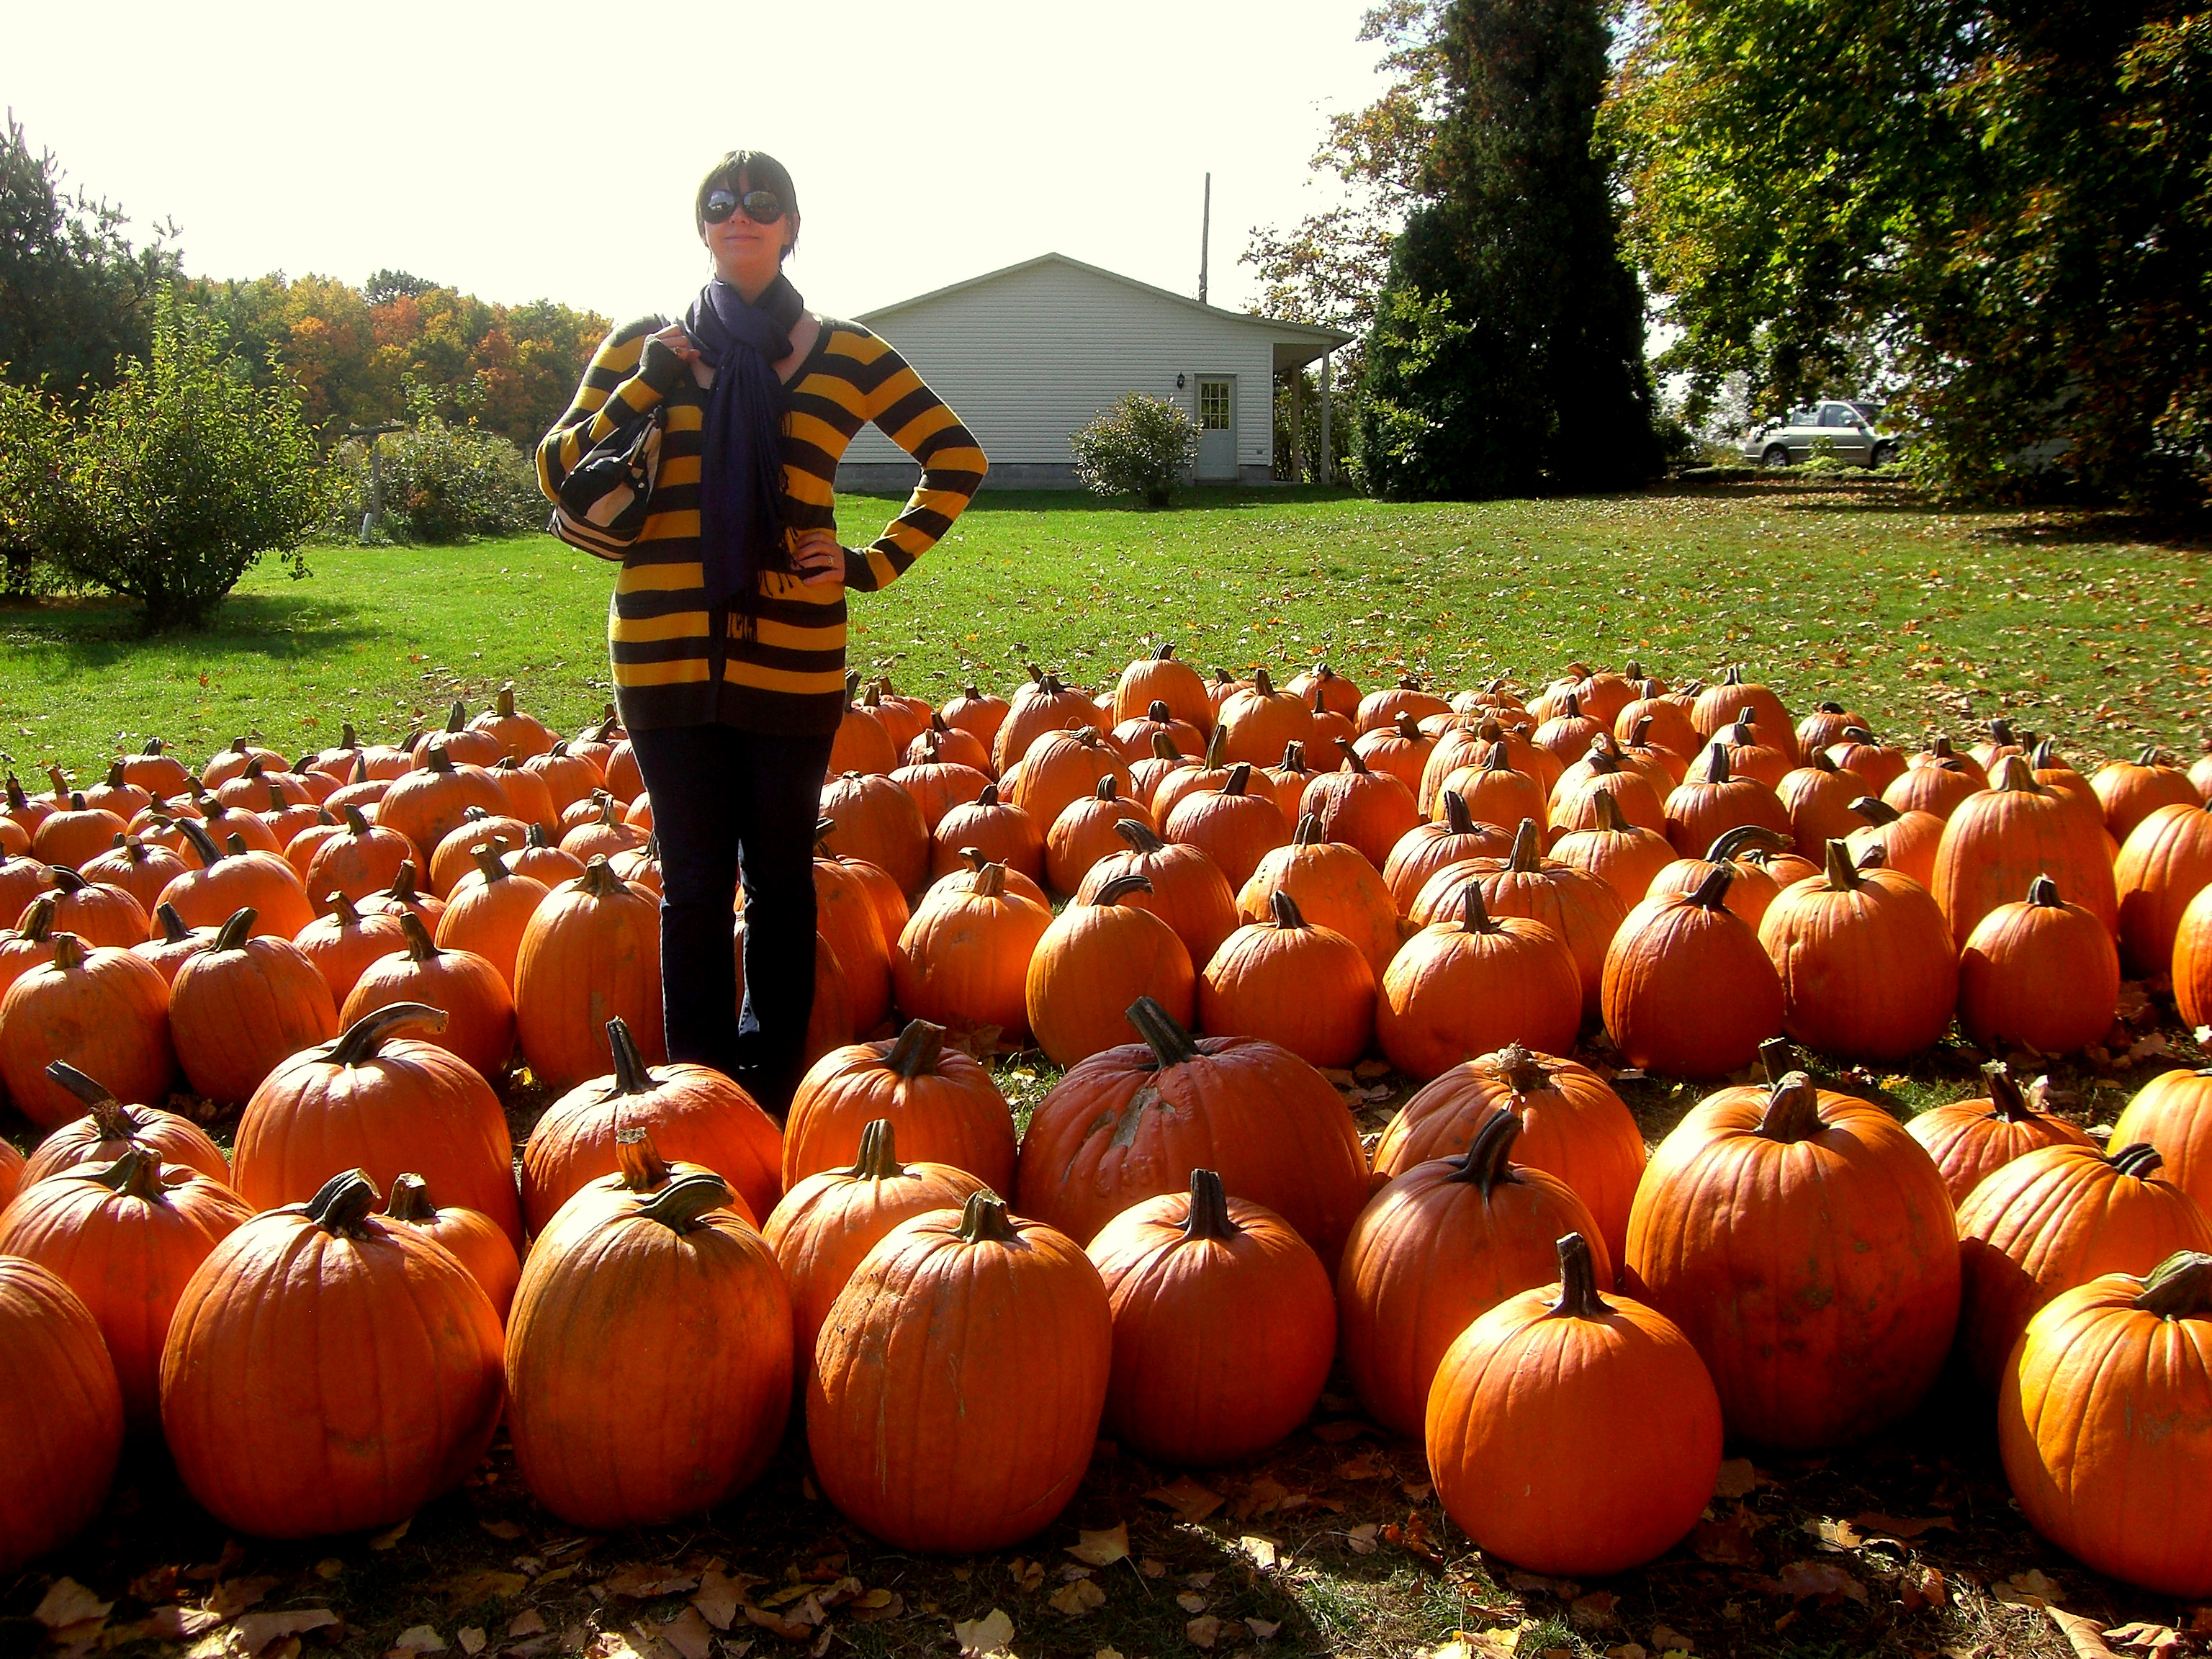 Pumpkin field photo